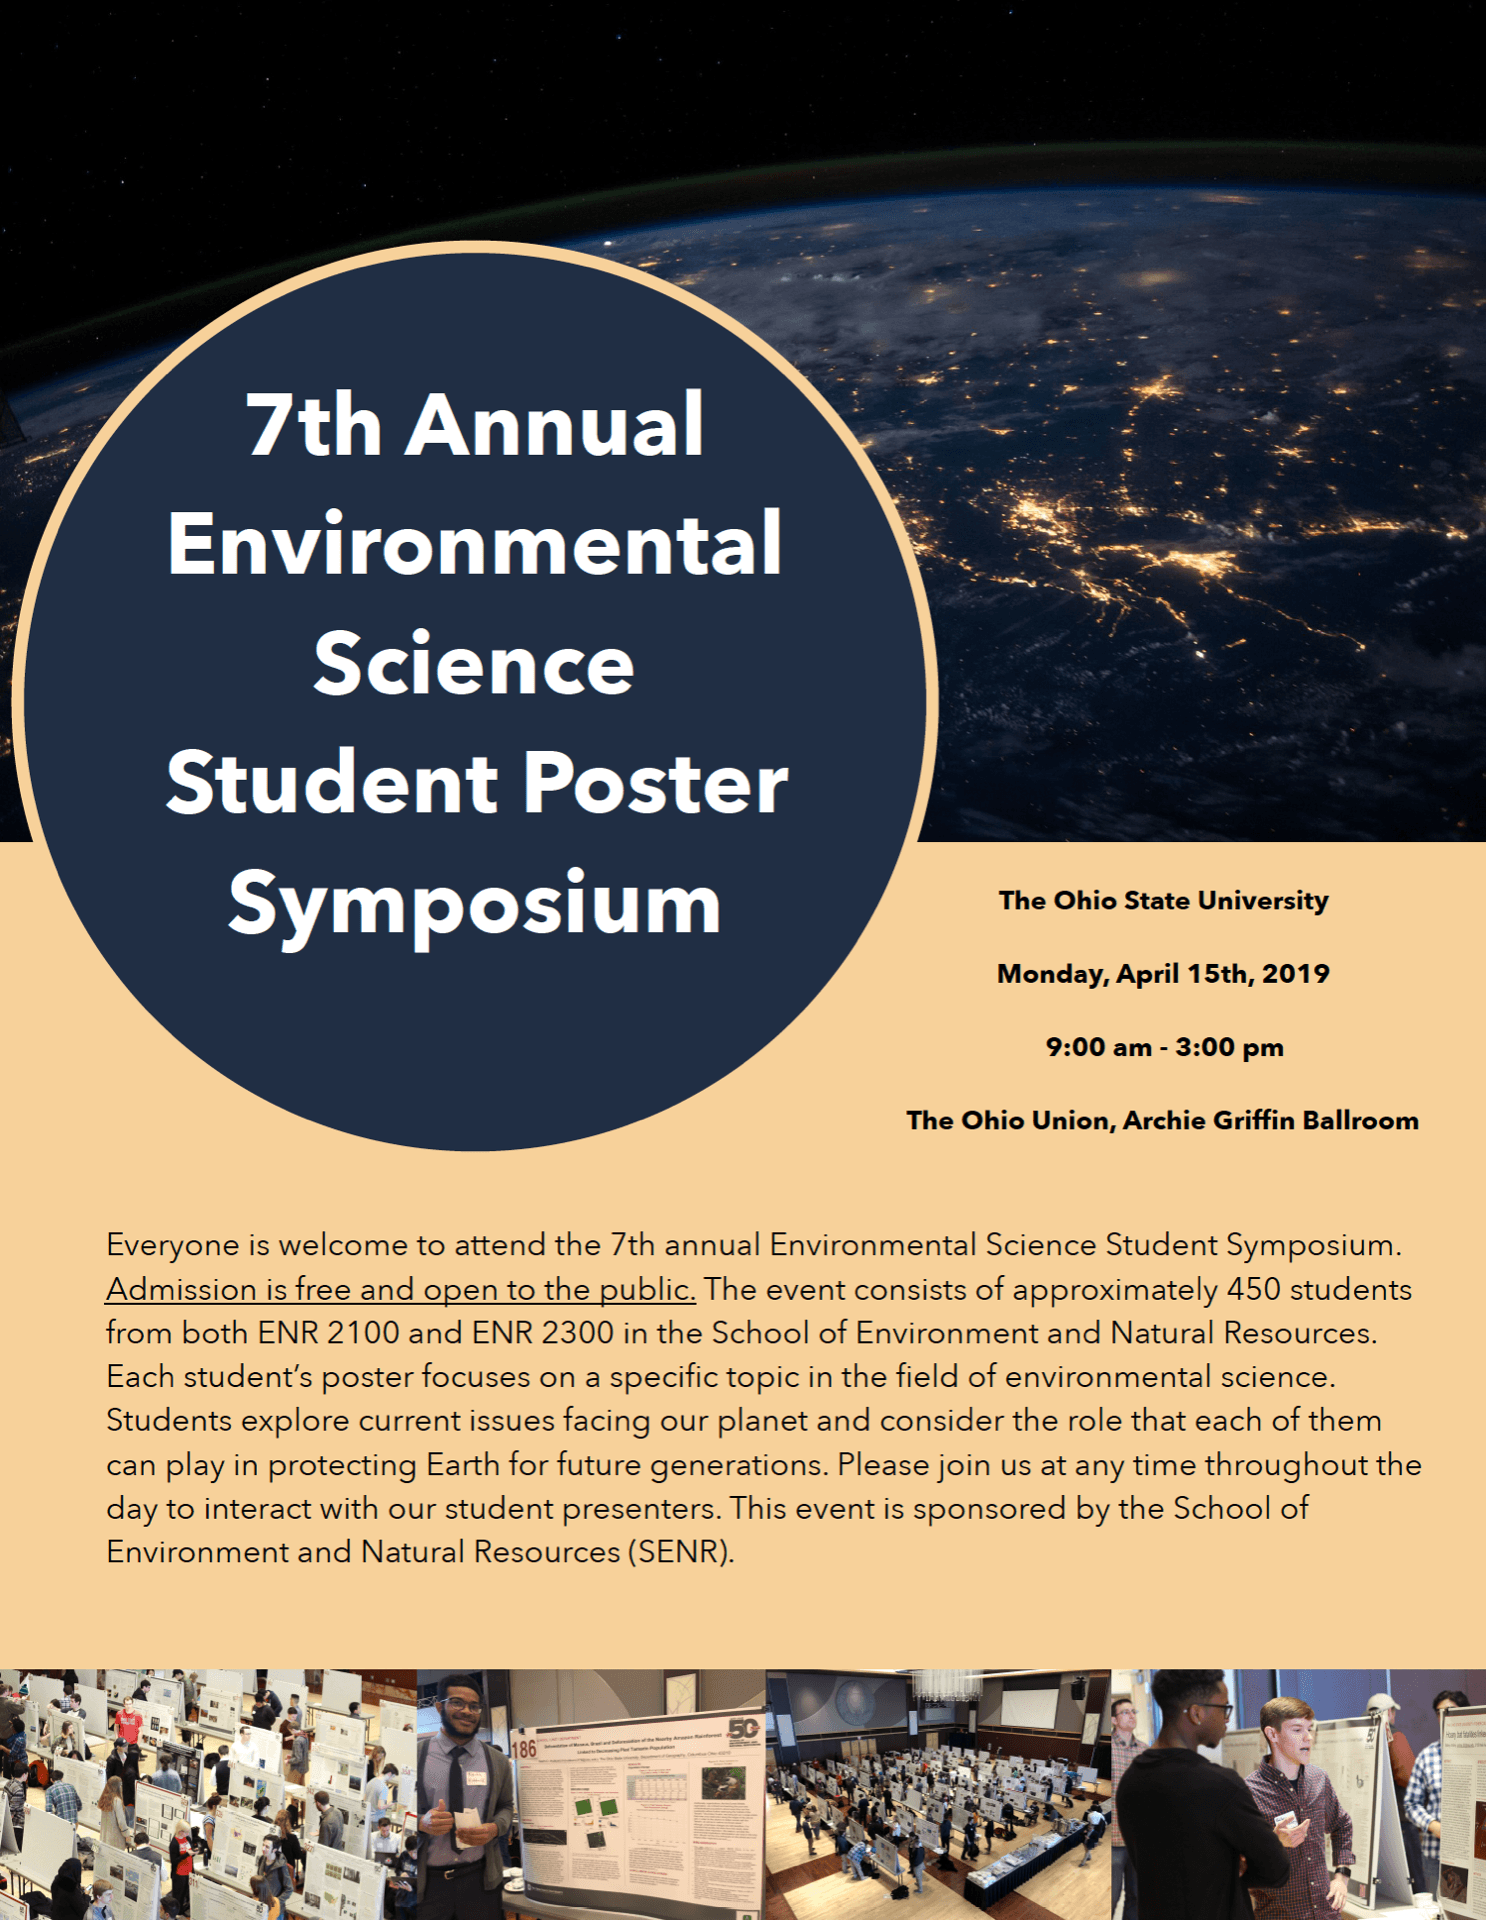 flyer for 2019 poster symposium with details of event